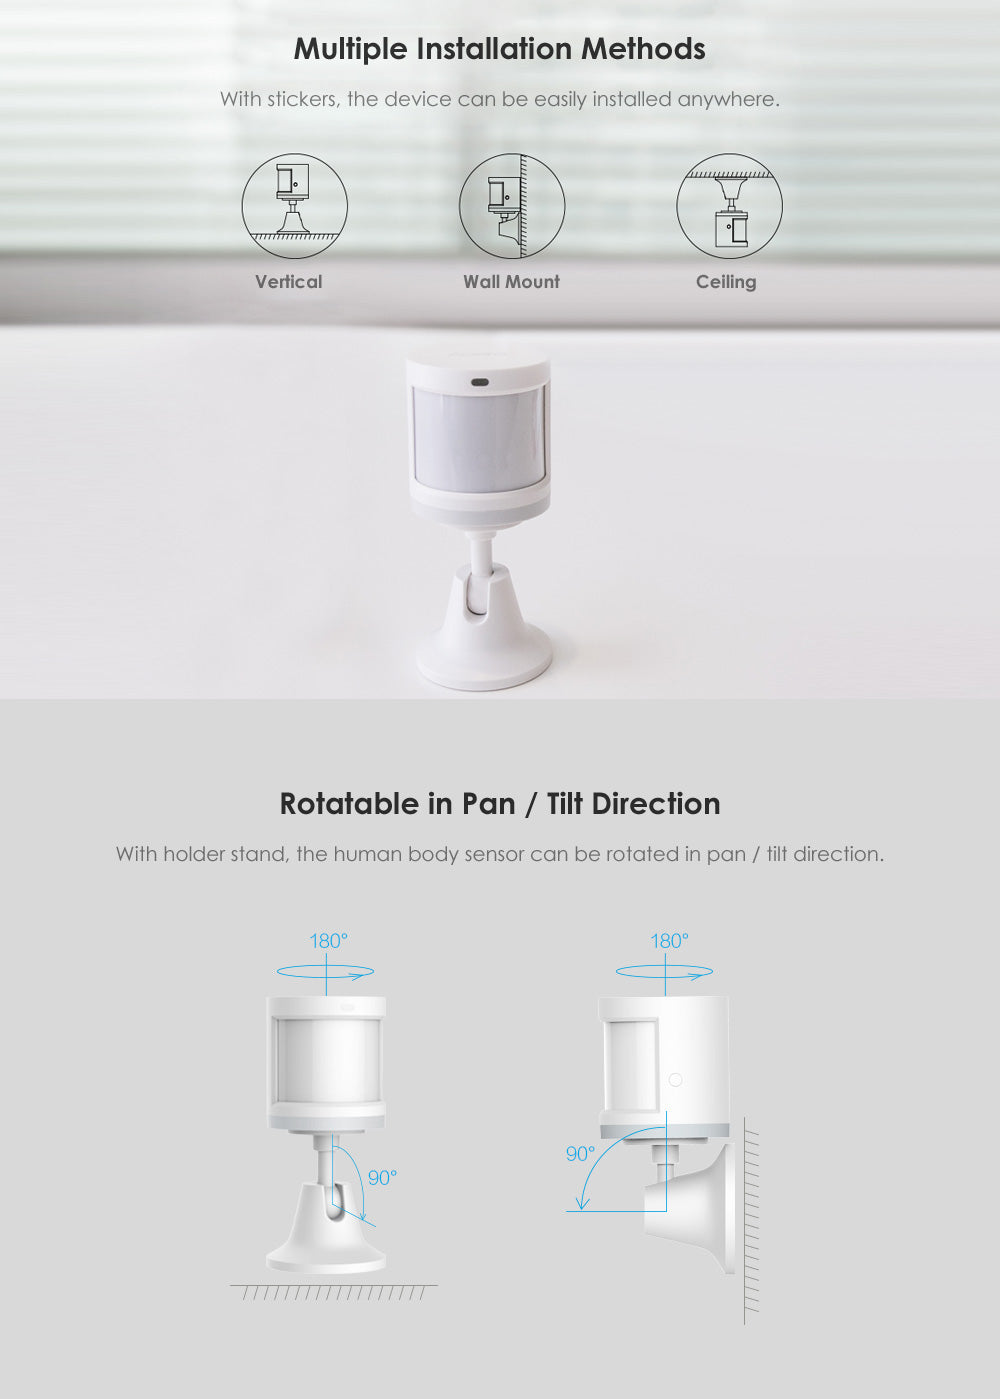 Xiaomi Aqara Smart Home Human Body Sensor Security Device with Holder Stand Movement Sense Light Intensity Detection